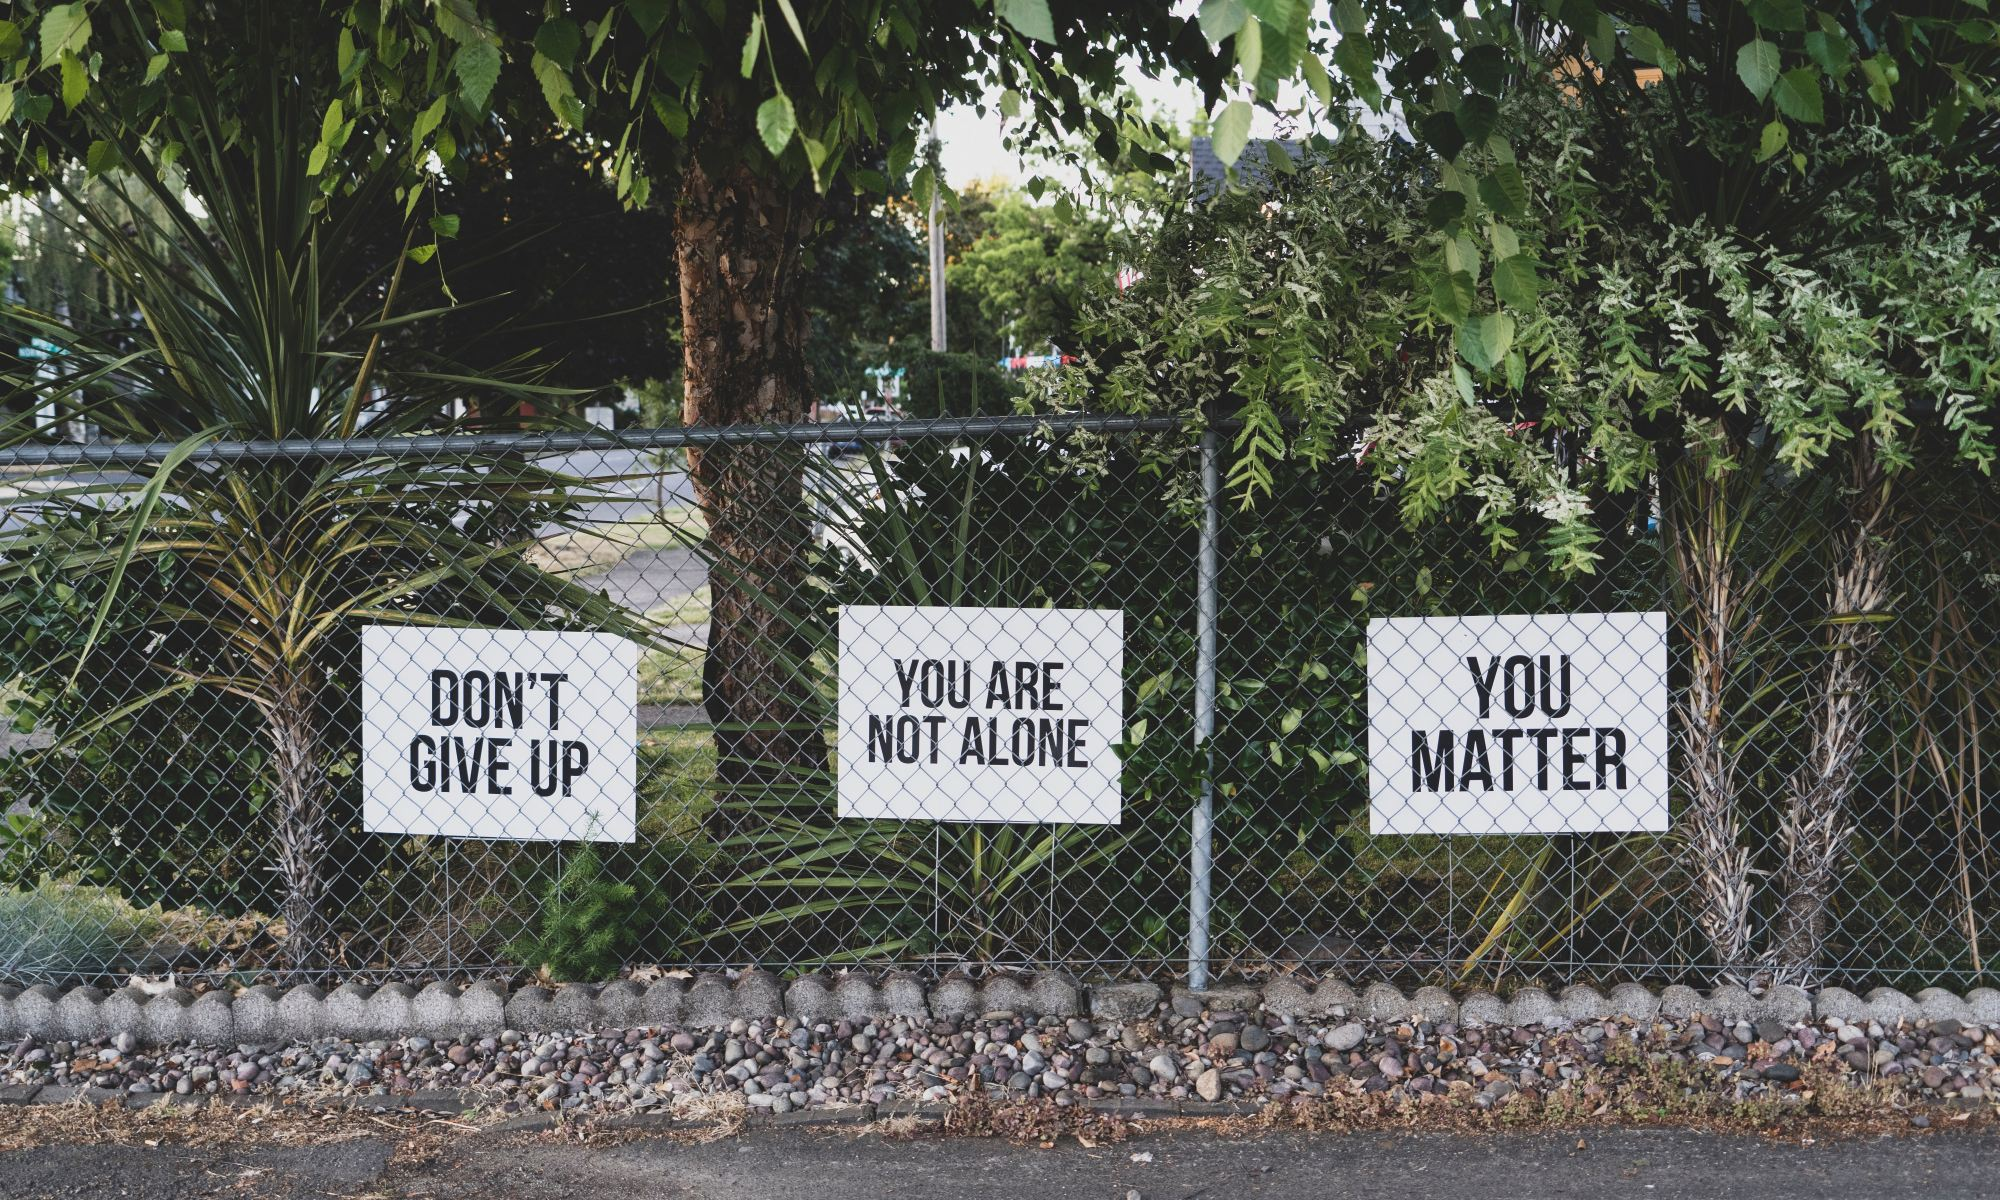 Positive motivating mental health signs posted on fence along trees